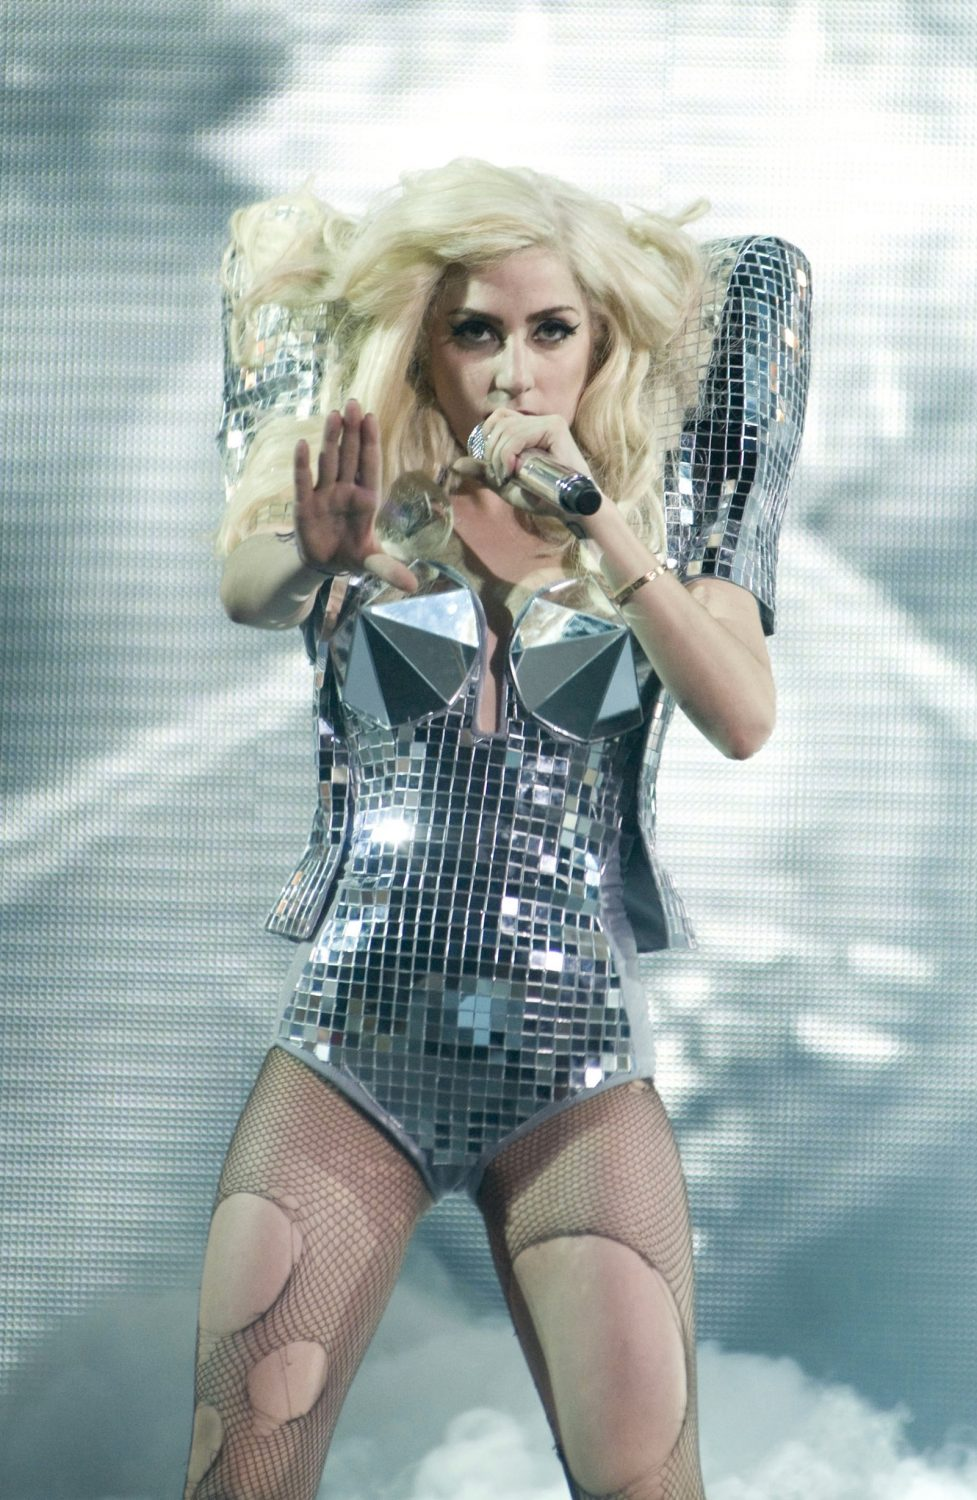 http://www.arizonafoothillsmagazine.com/valleygirlblog/wp-content/uploads/Lady-Gaga-Monster-Ball-Tour-L-A-lady-gaga-9559965-1601-2458.jpg